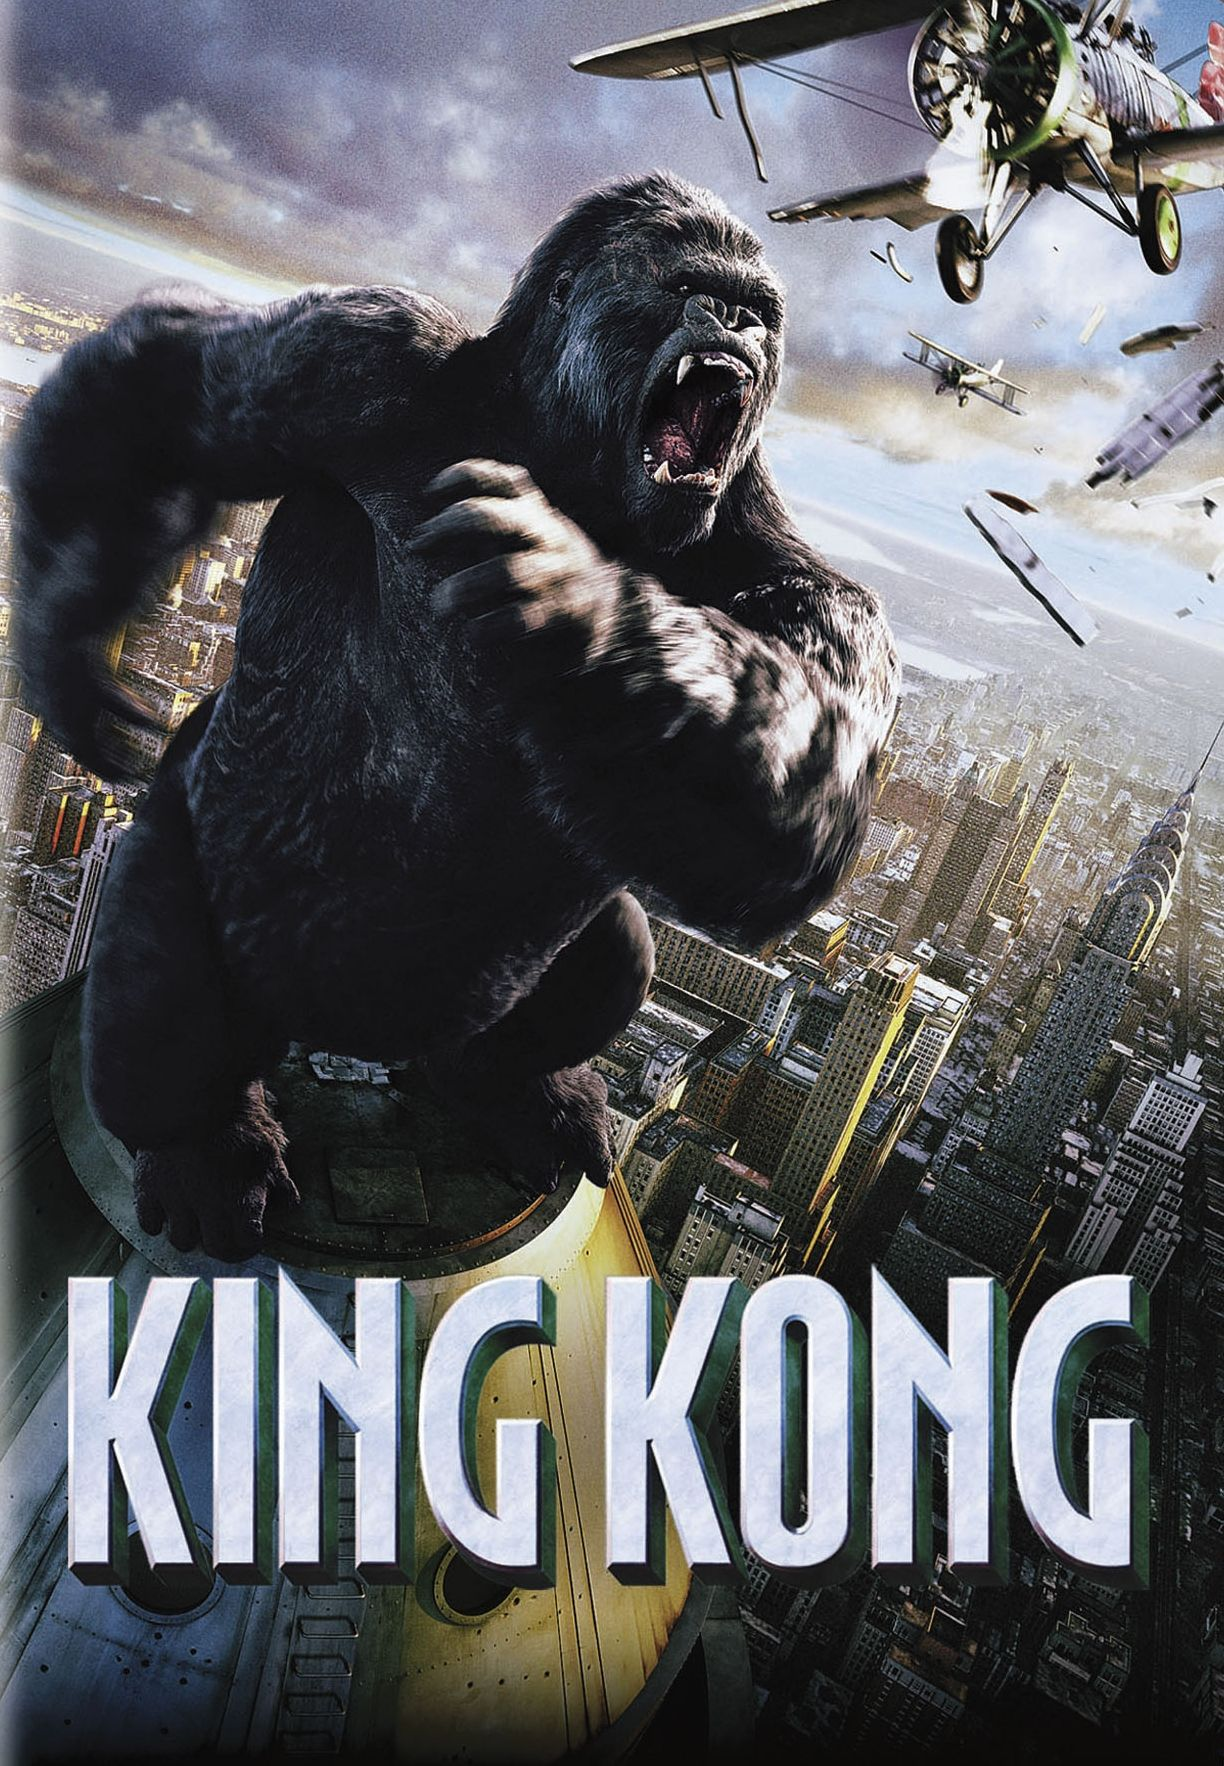 Image result for king kong movie